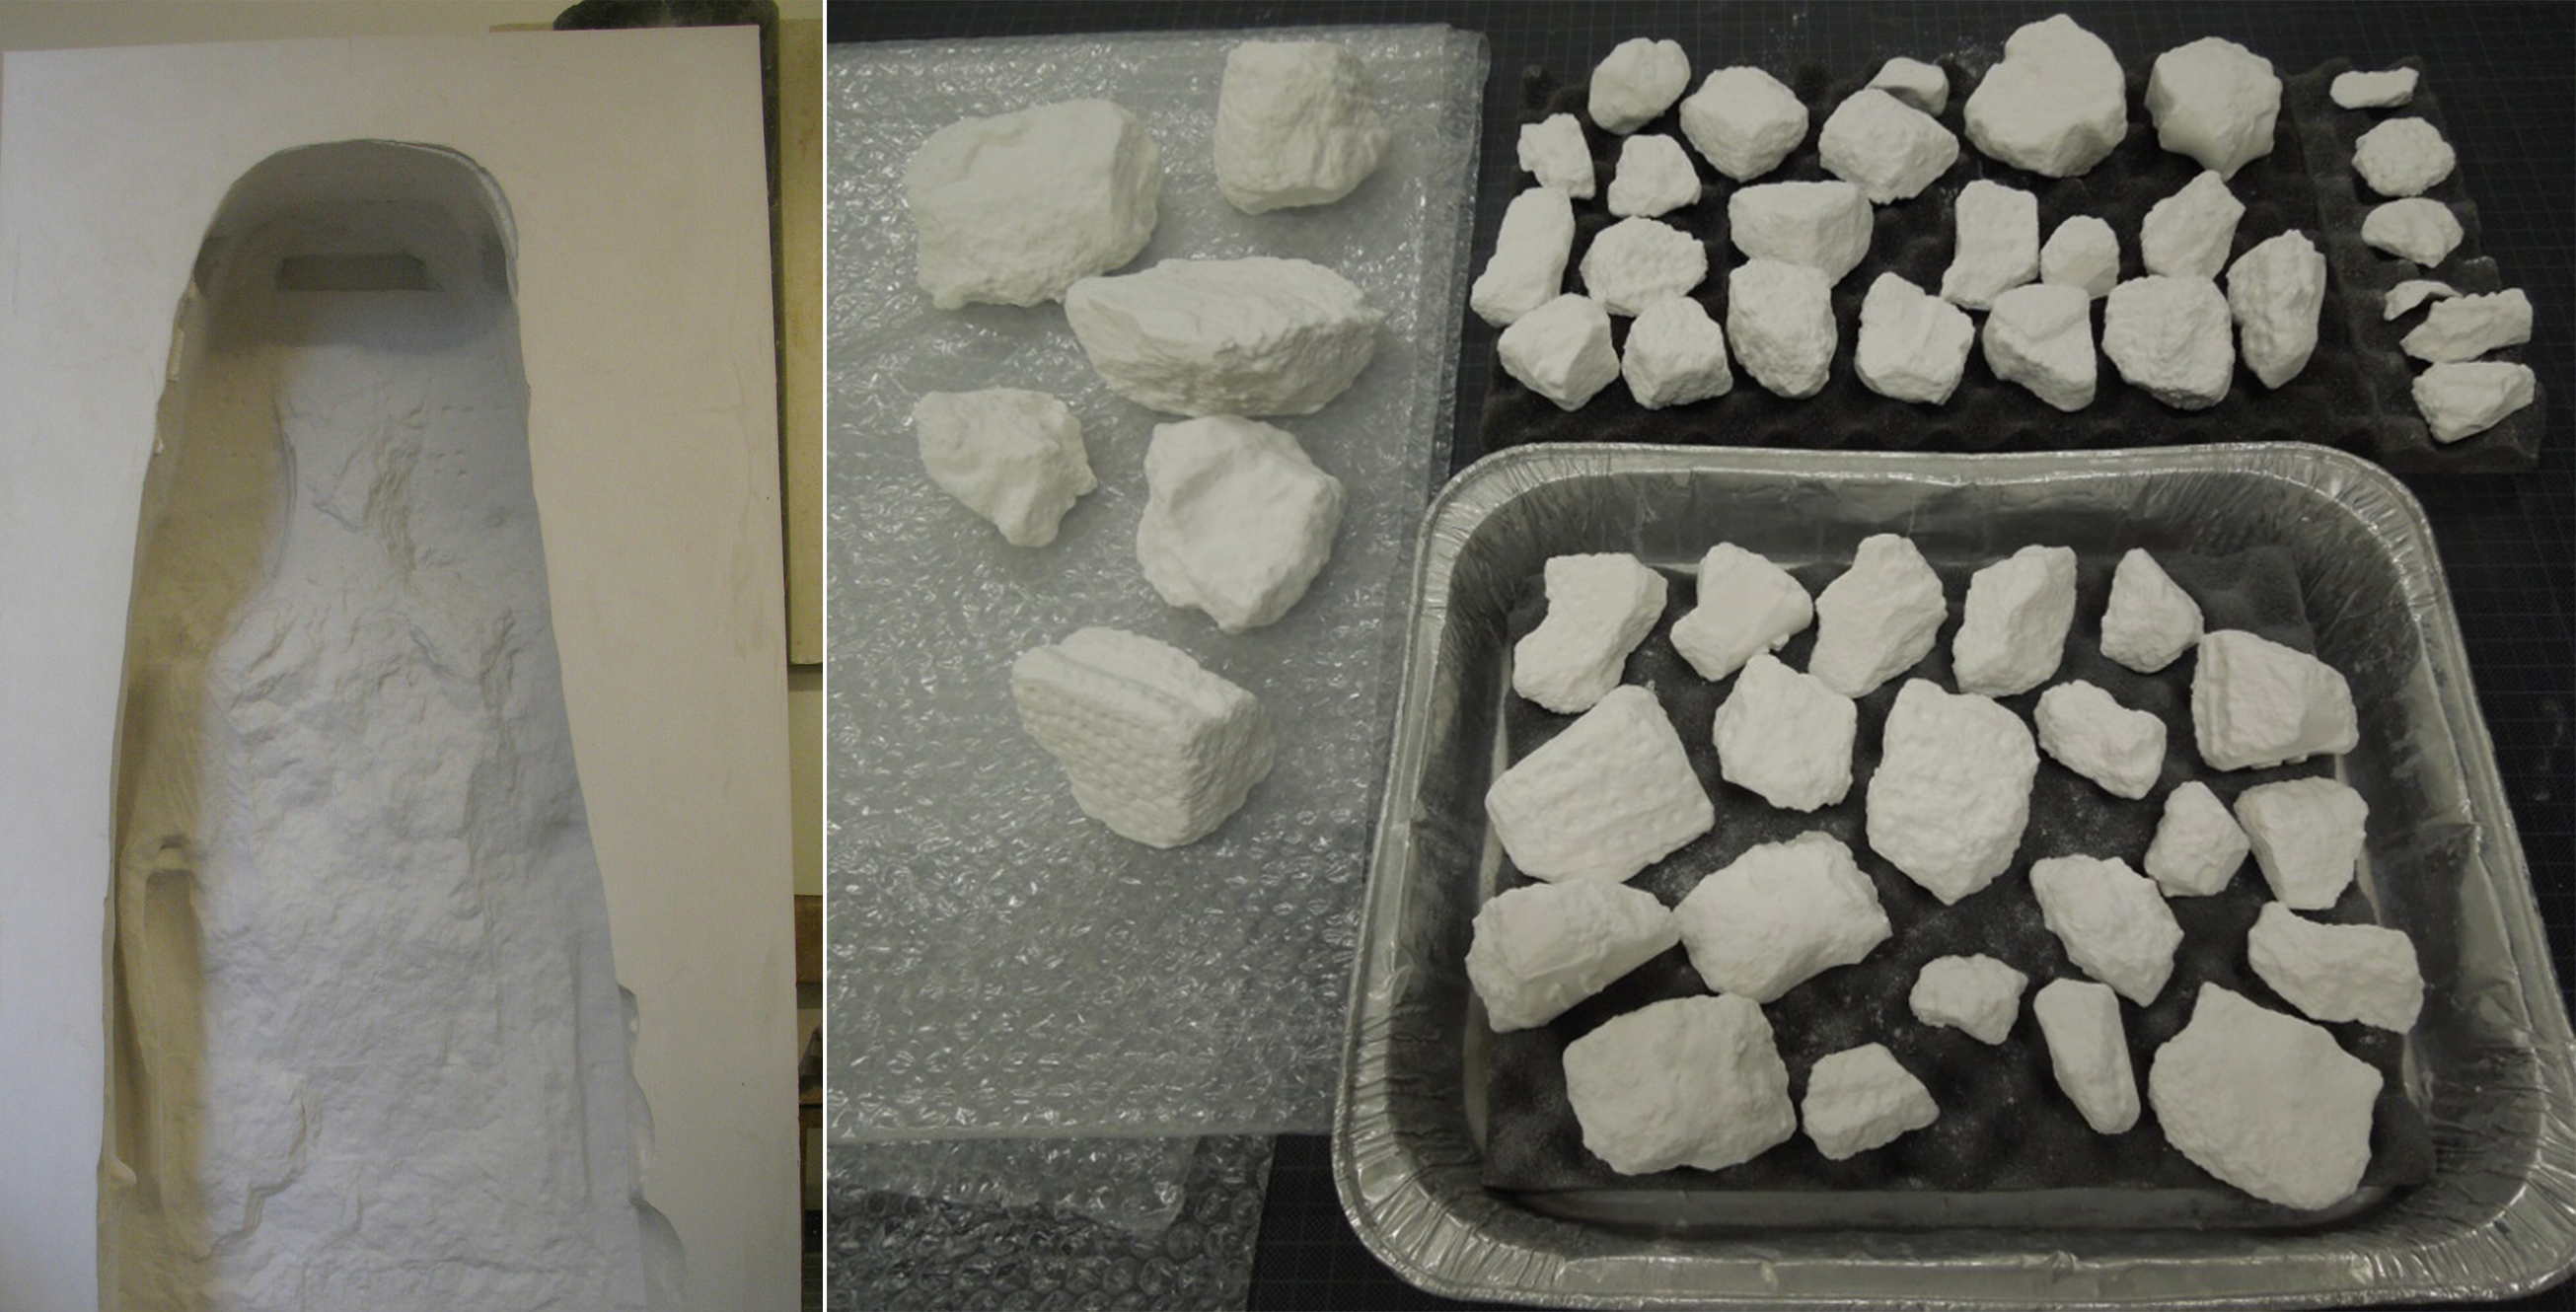 3D printed niche on left, 3D printed fragments at 1/25 scale or right.